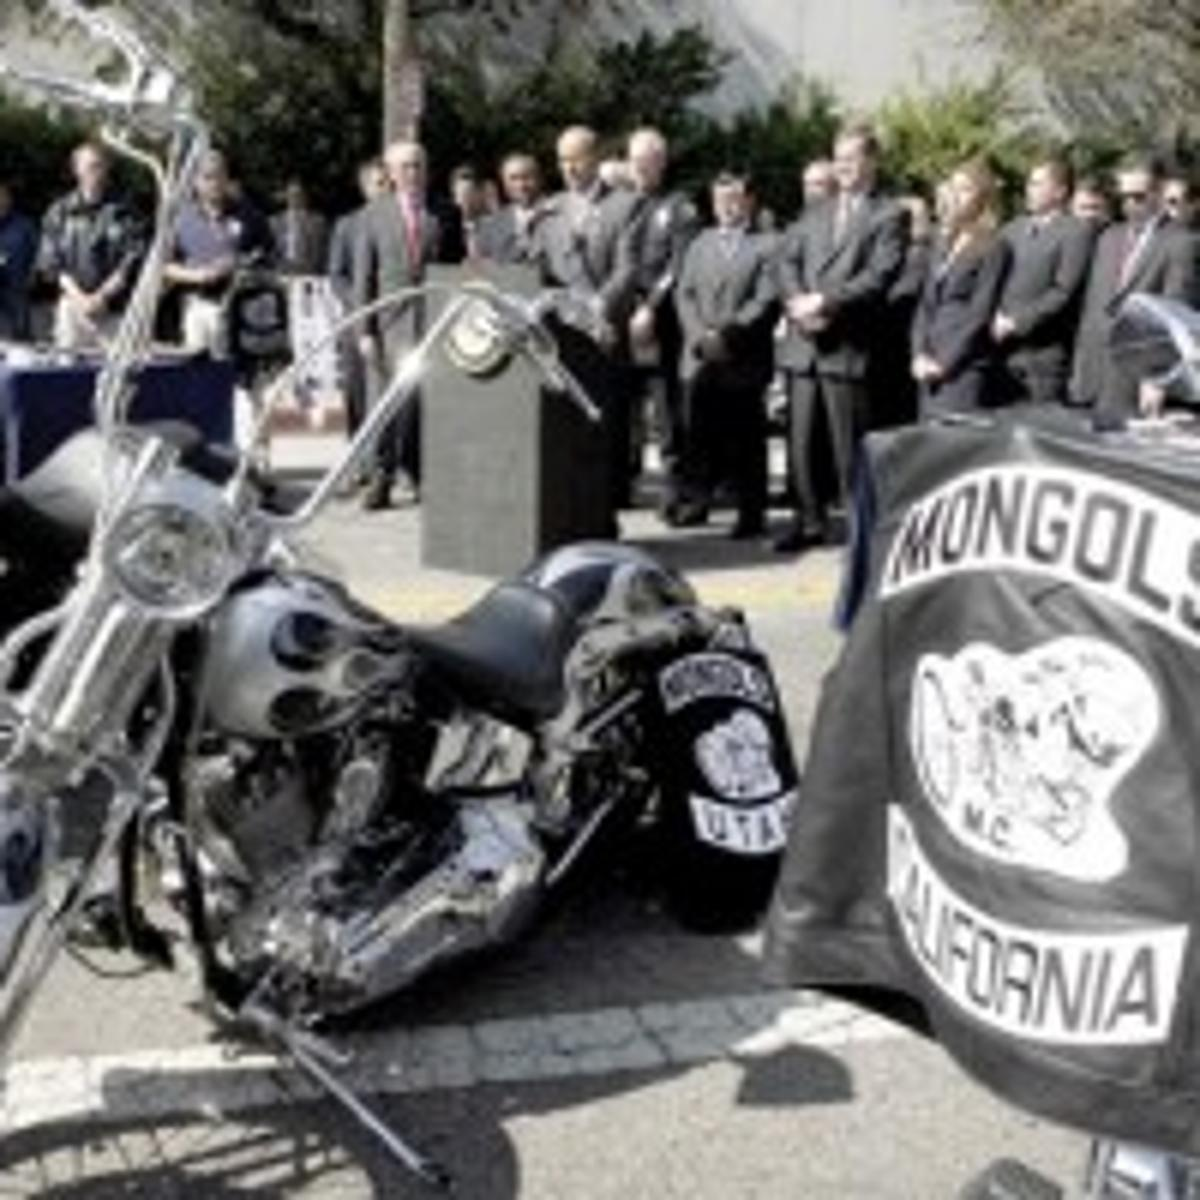 Federal agents sweep through Mongol Motorcycle Club | National